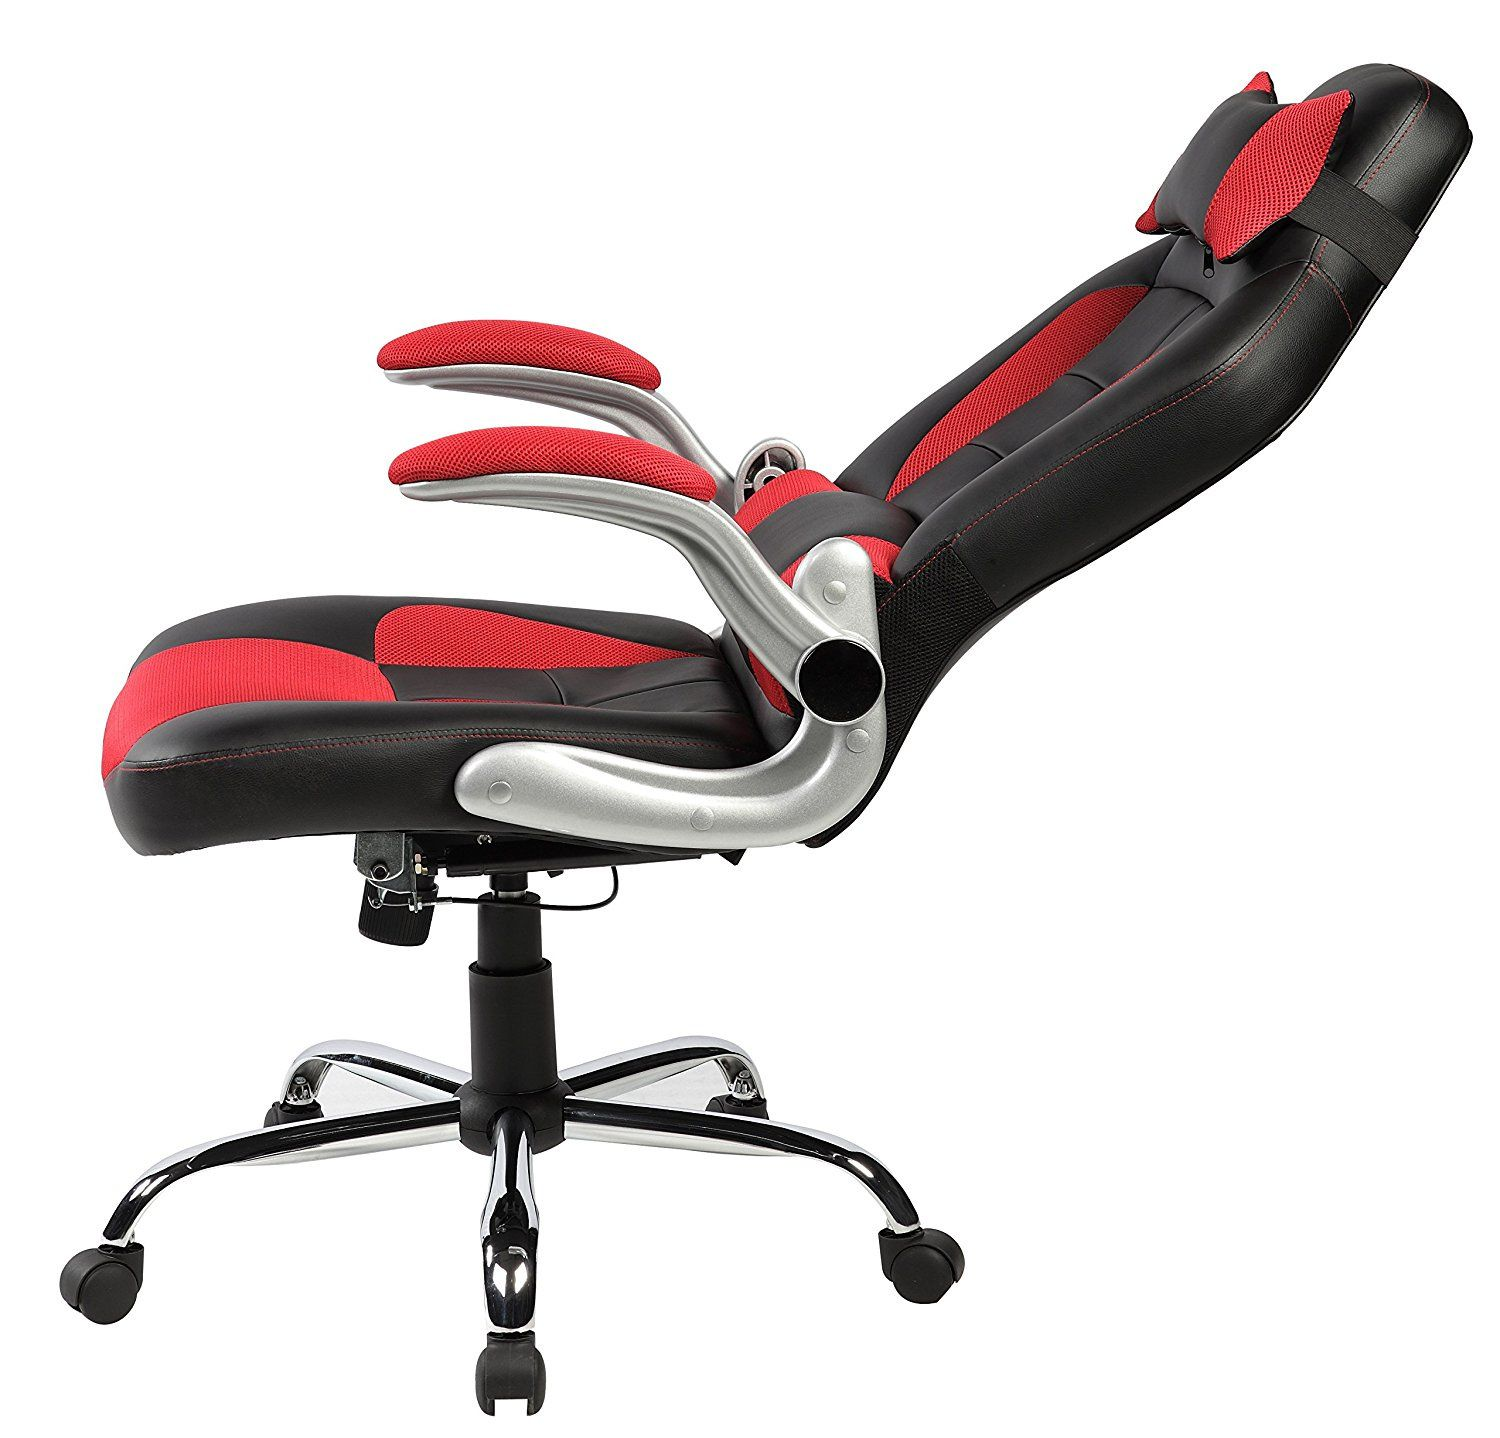 Ergonomic Reclining Office Chair Home Desk Furniture Check More At Http